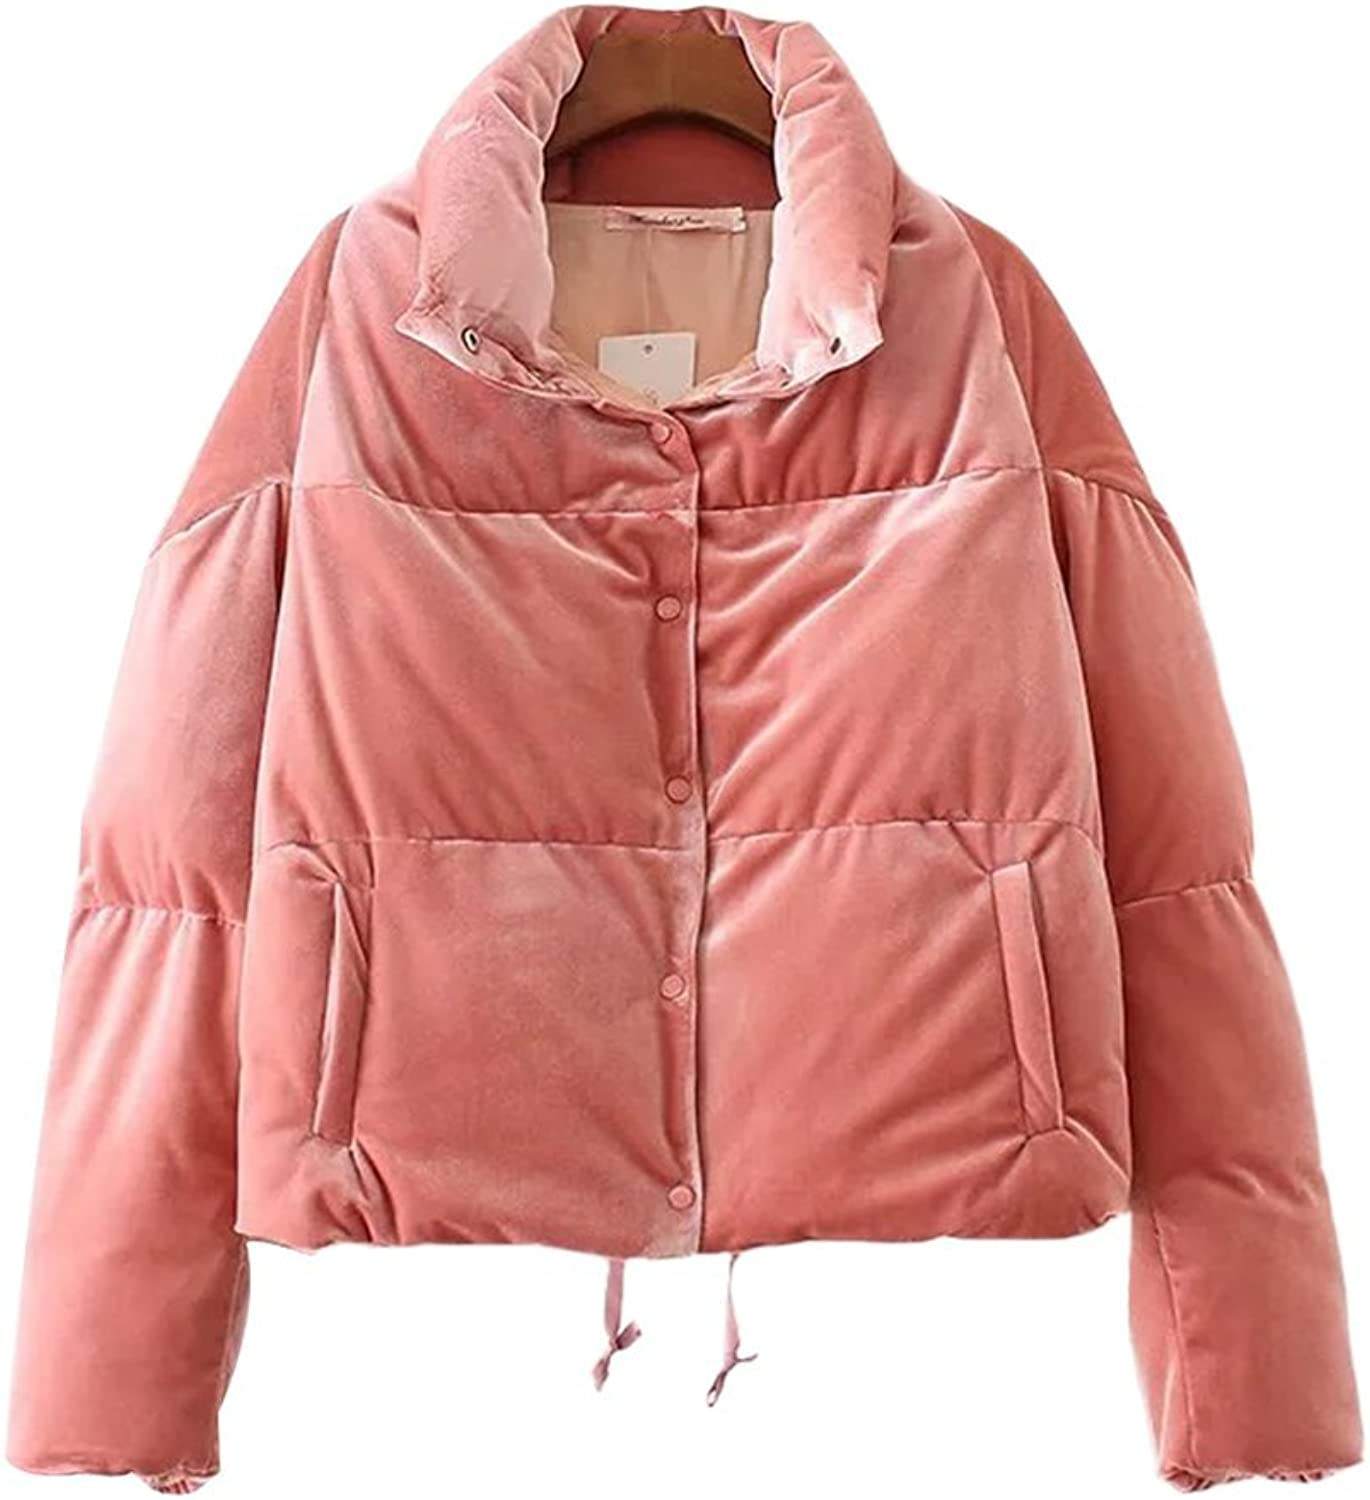 HIENAJ Women's Puffer Down Outwear Coats Quilted Front Pressed Button Coat with Pockets